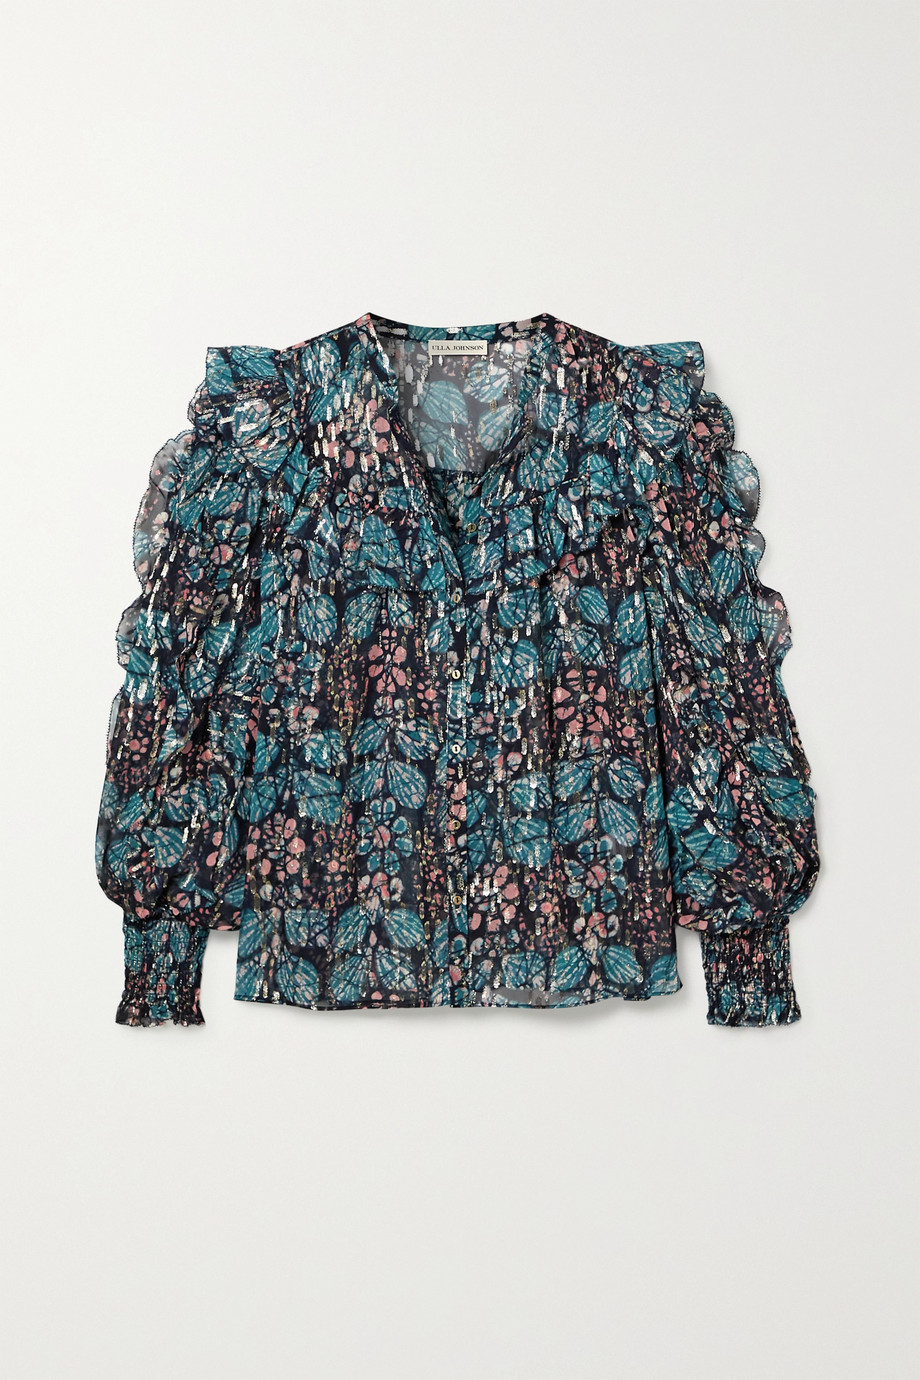 Ulla Johnson Isadora ruffled floral-print fil coupé silk and Lurex-blend georgette blouse